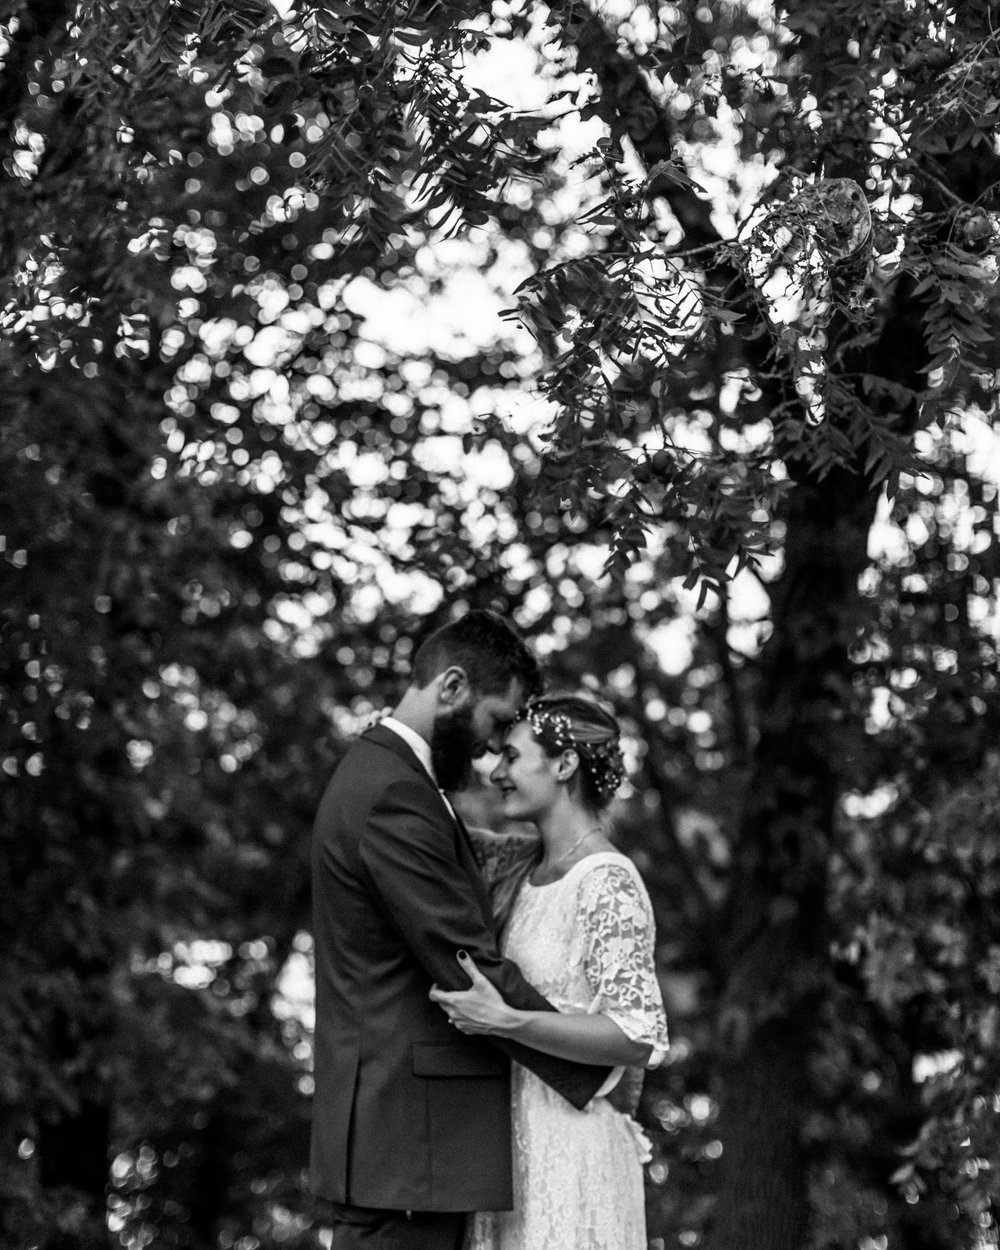 40_James P. Davis Hall Summer Wedding Kansas City_Kindling Wedding Photography.JPG